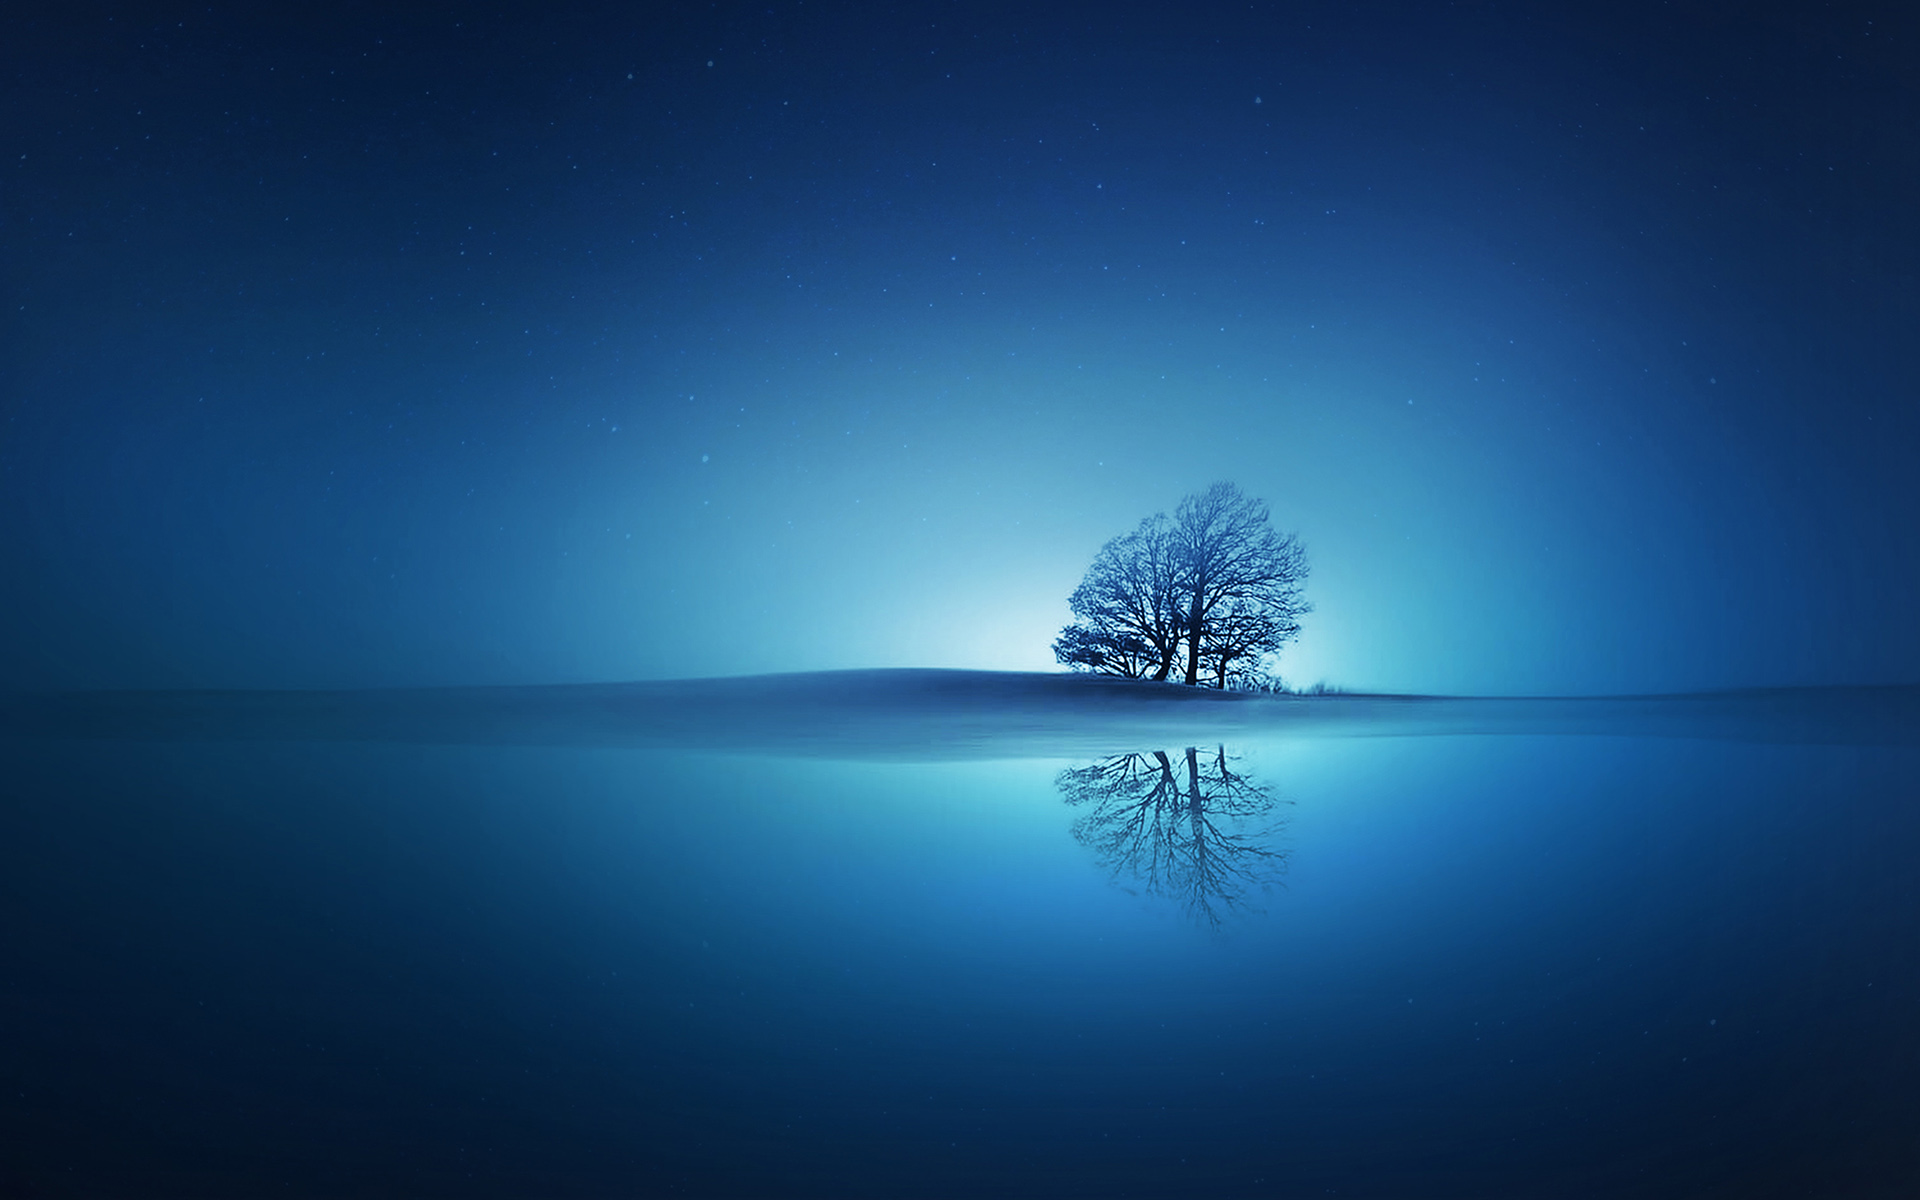 HD Wallpapers Blue Reflections